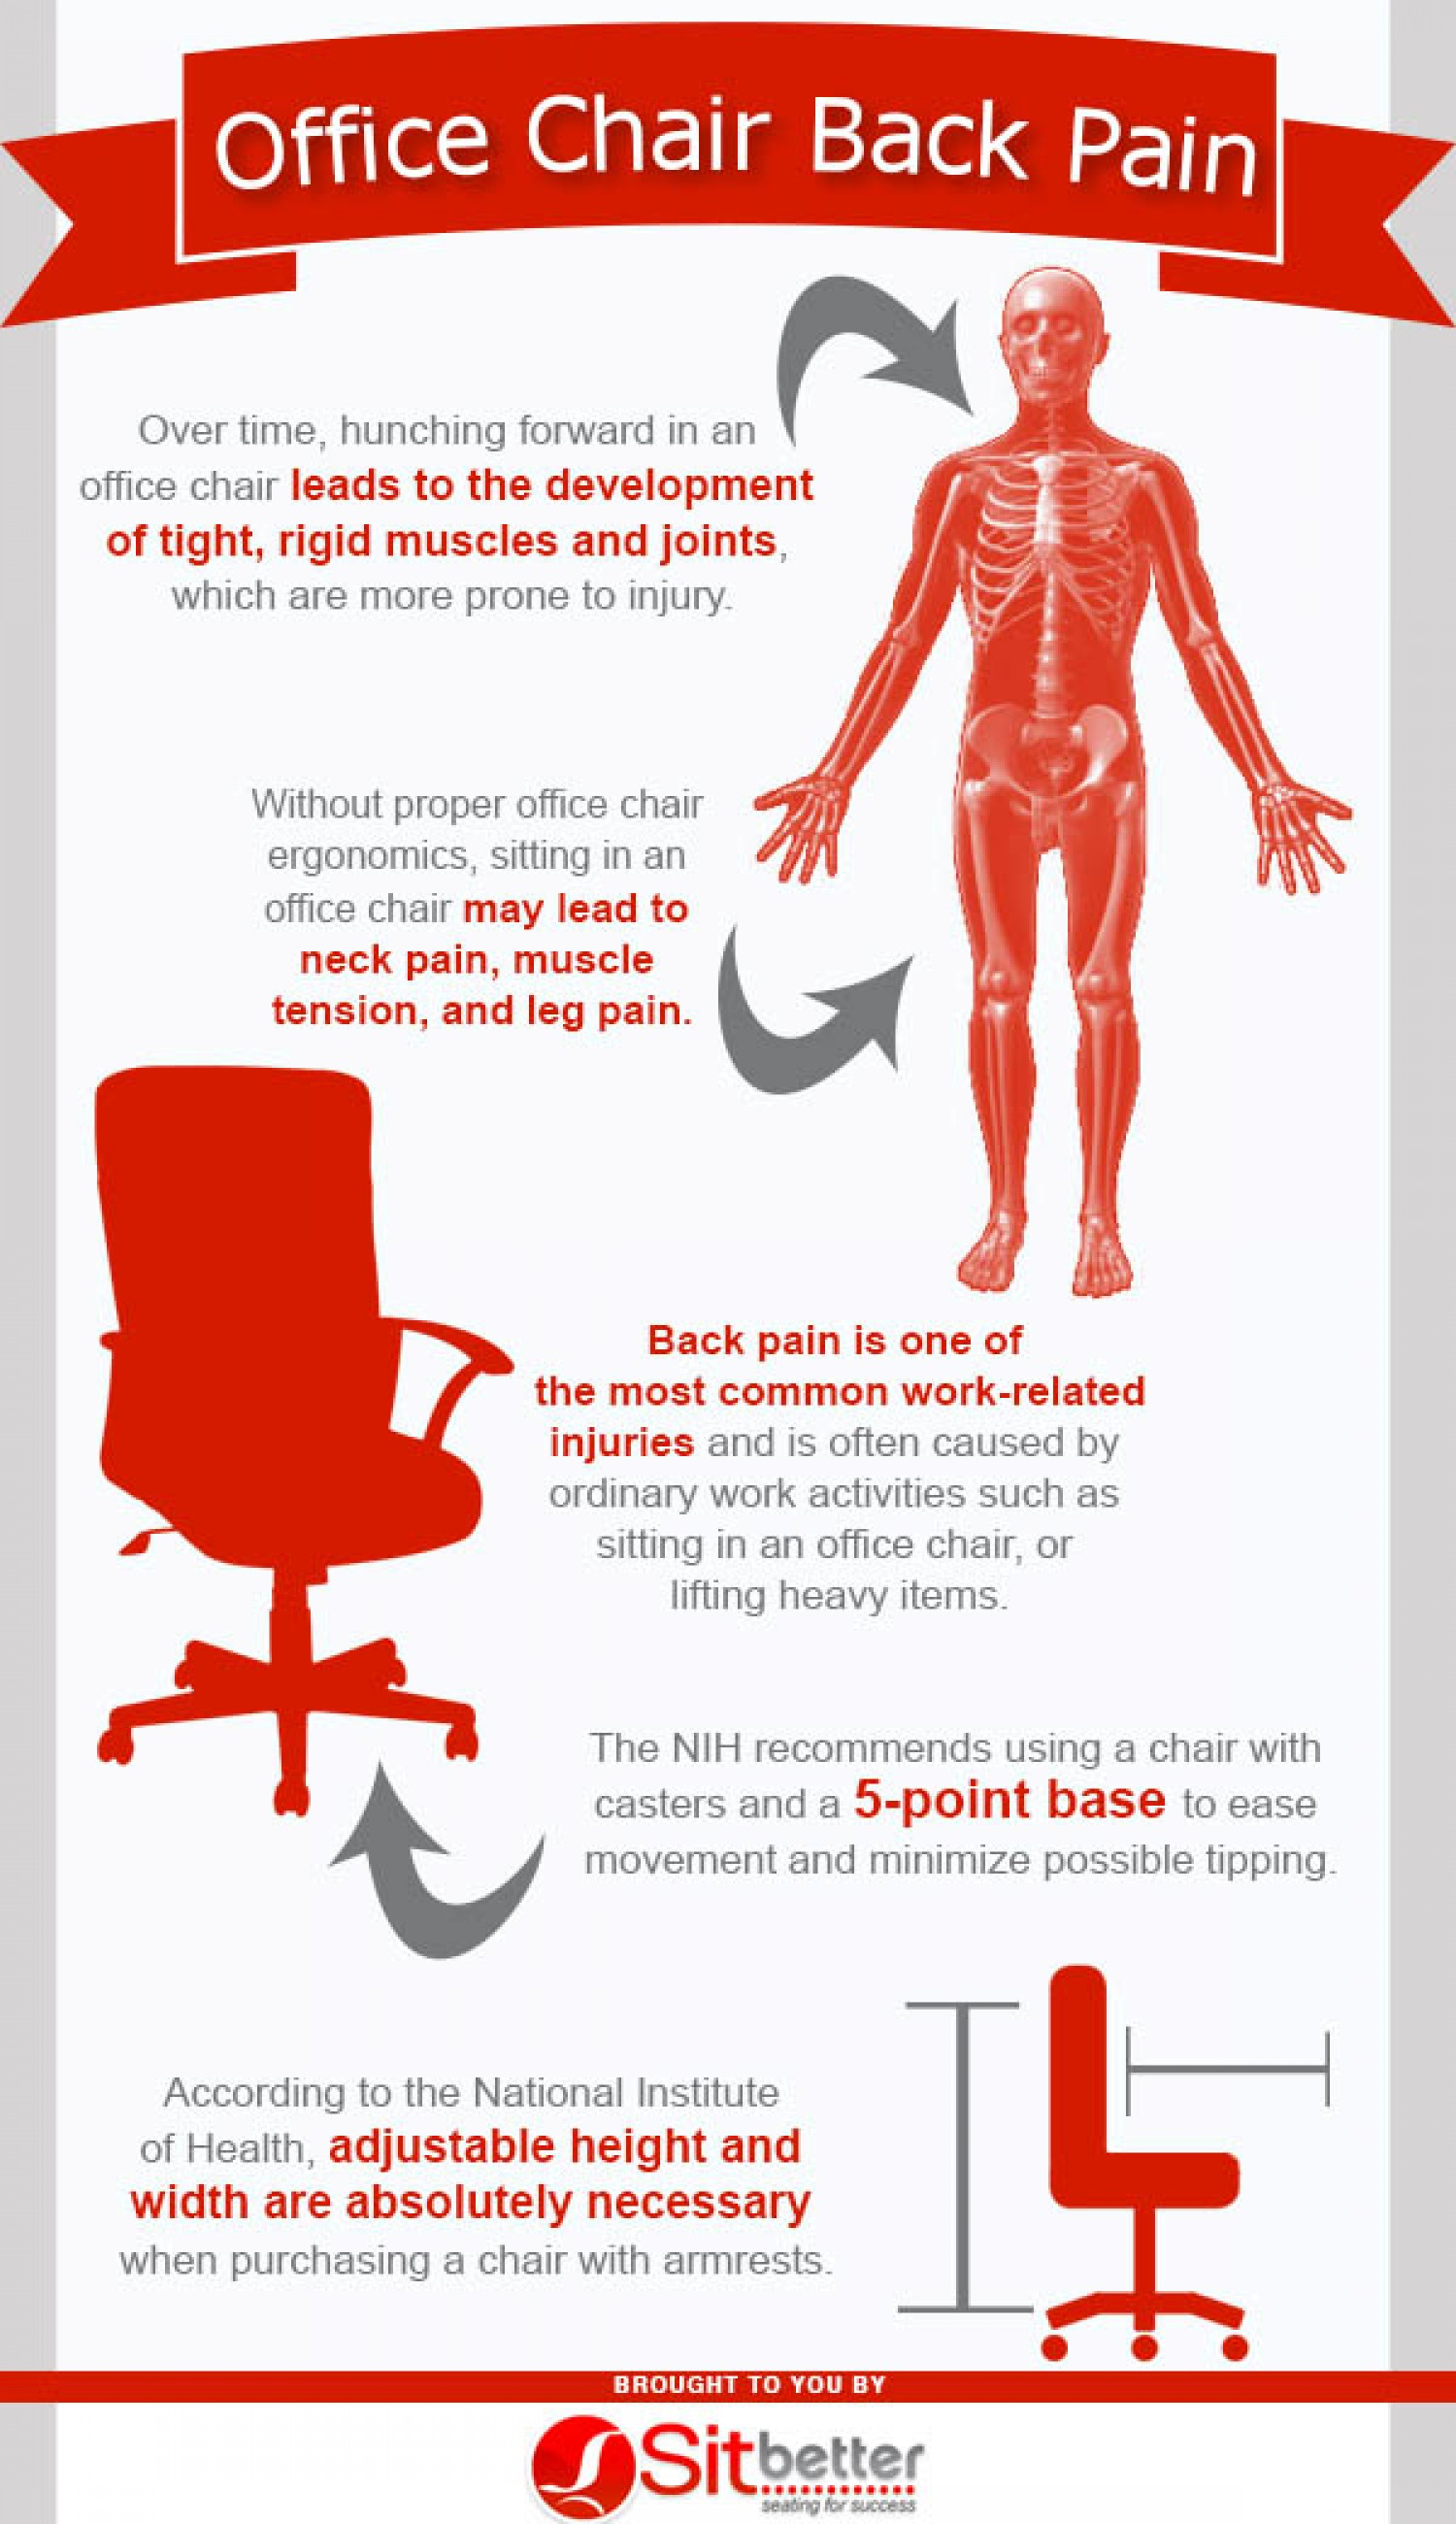 Office Chair Back Pain Infographic